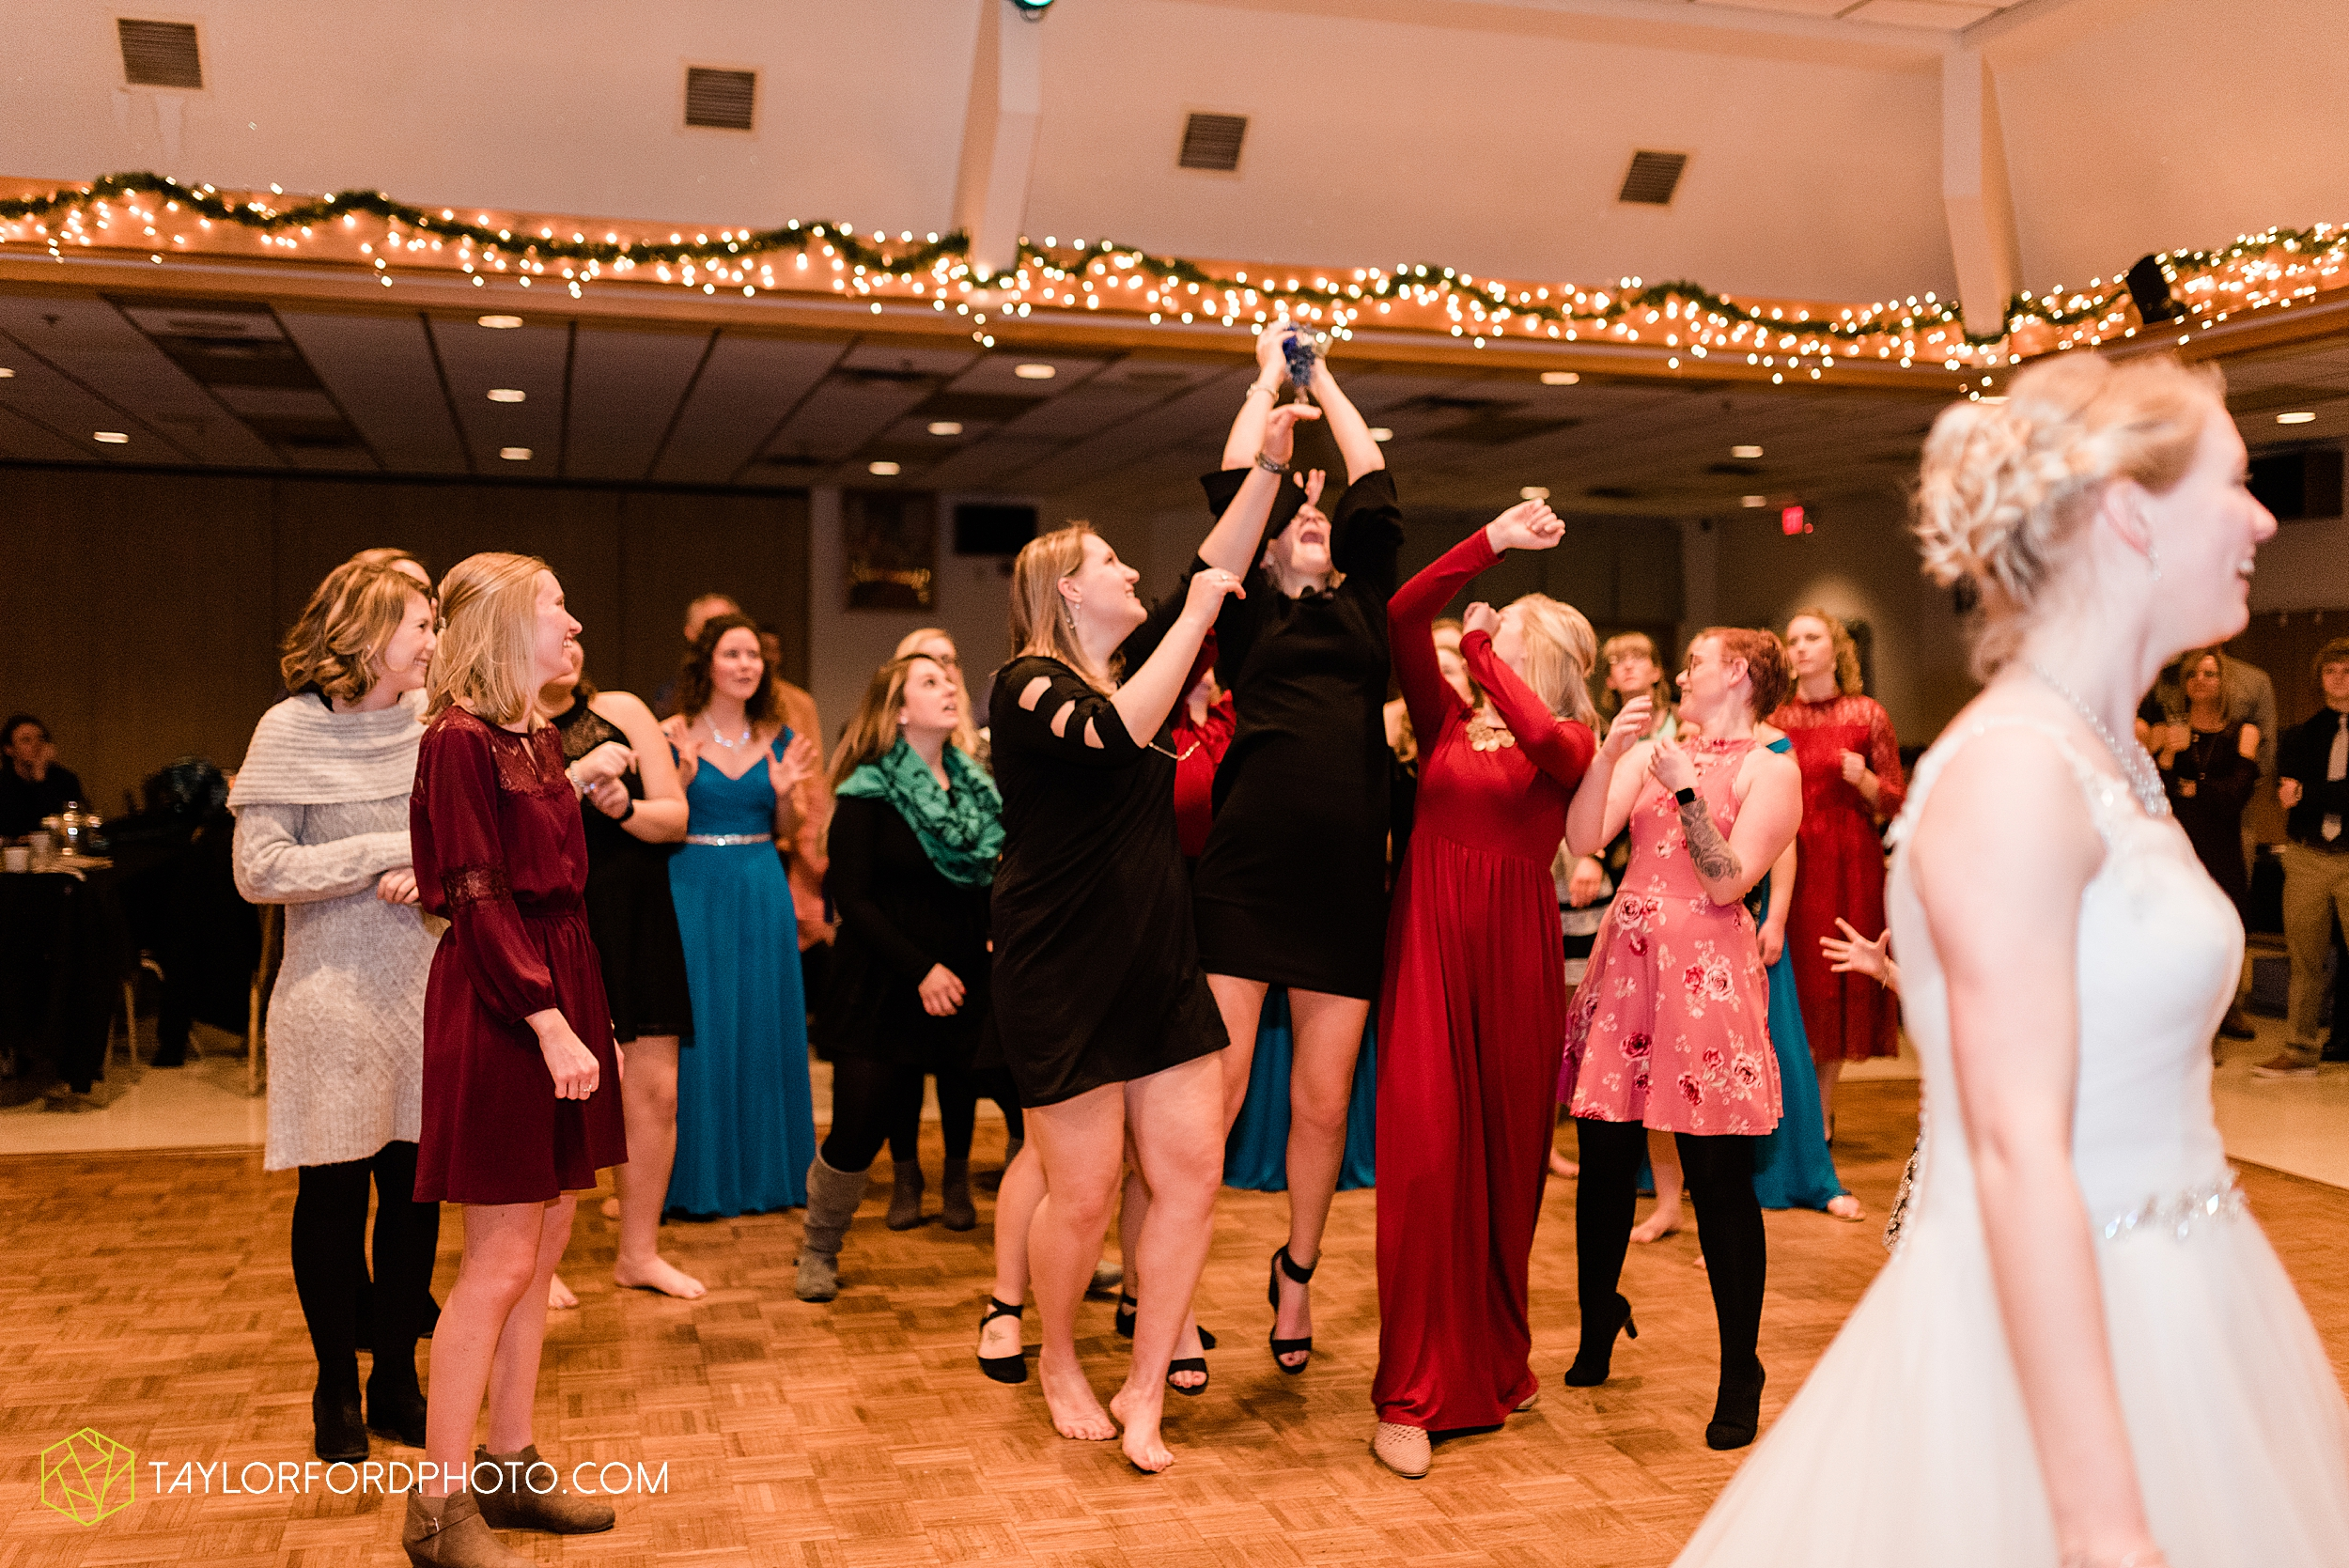 pleasant-view-church-christmas-celina-fraternal-order-of-eagles-reception-wedding-wren-willshire-van-wert-ohio-photography-taylor-ford-hirschy-photographer_2214.jpg